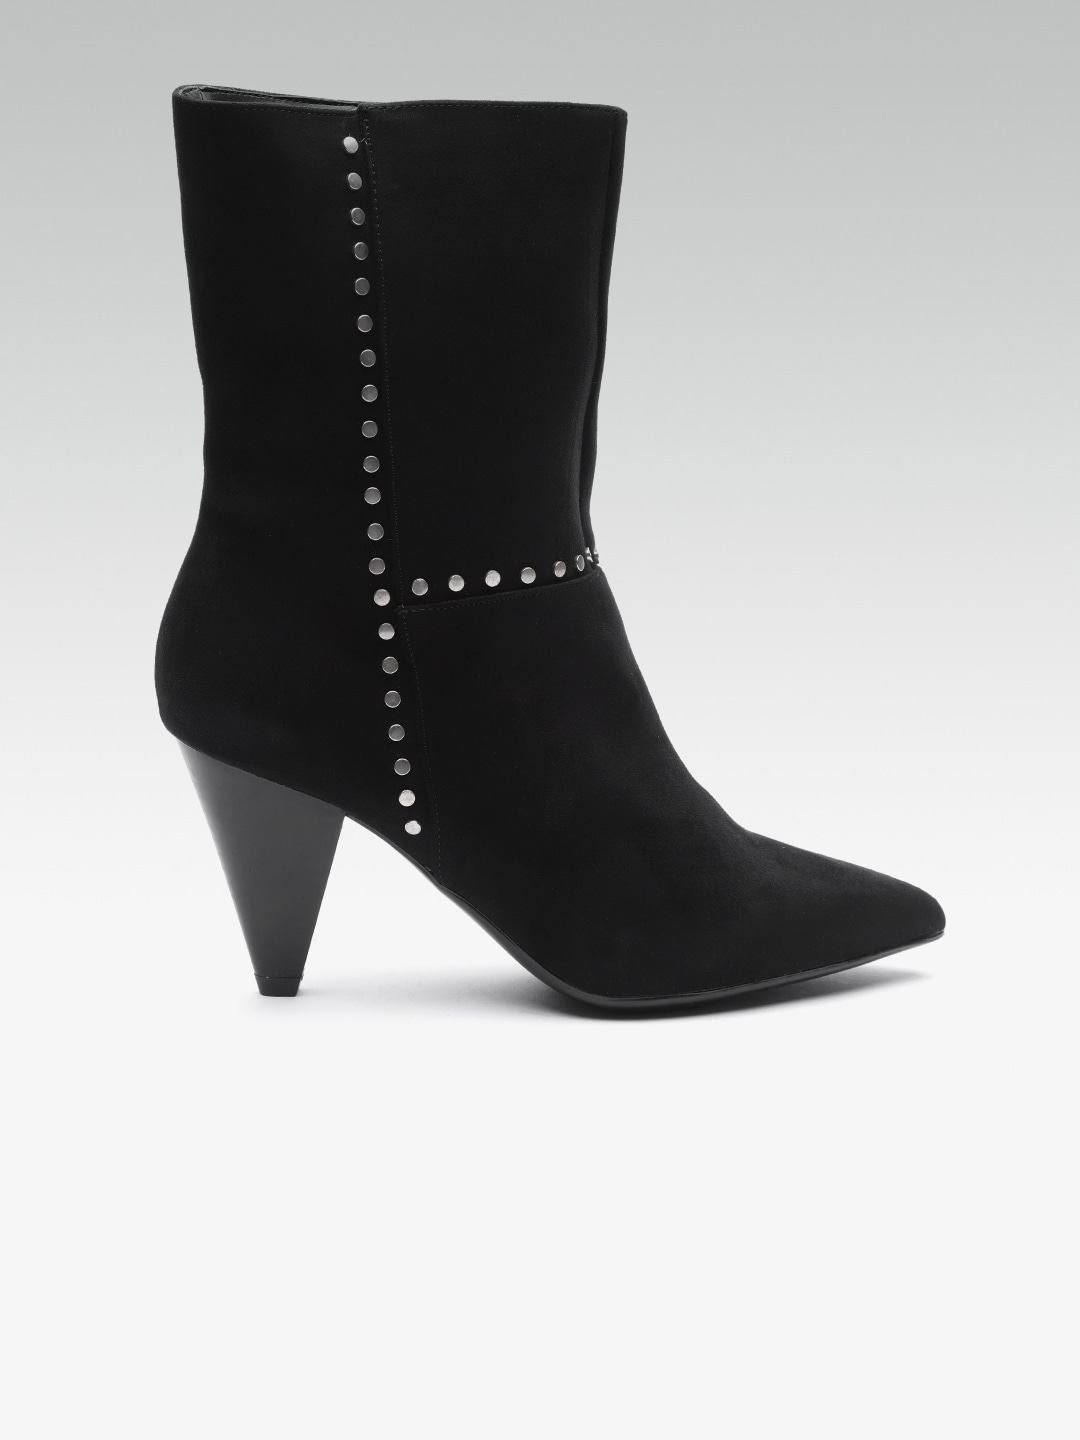 ffa3a29b6e8 Boots - Buy Boots for Women